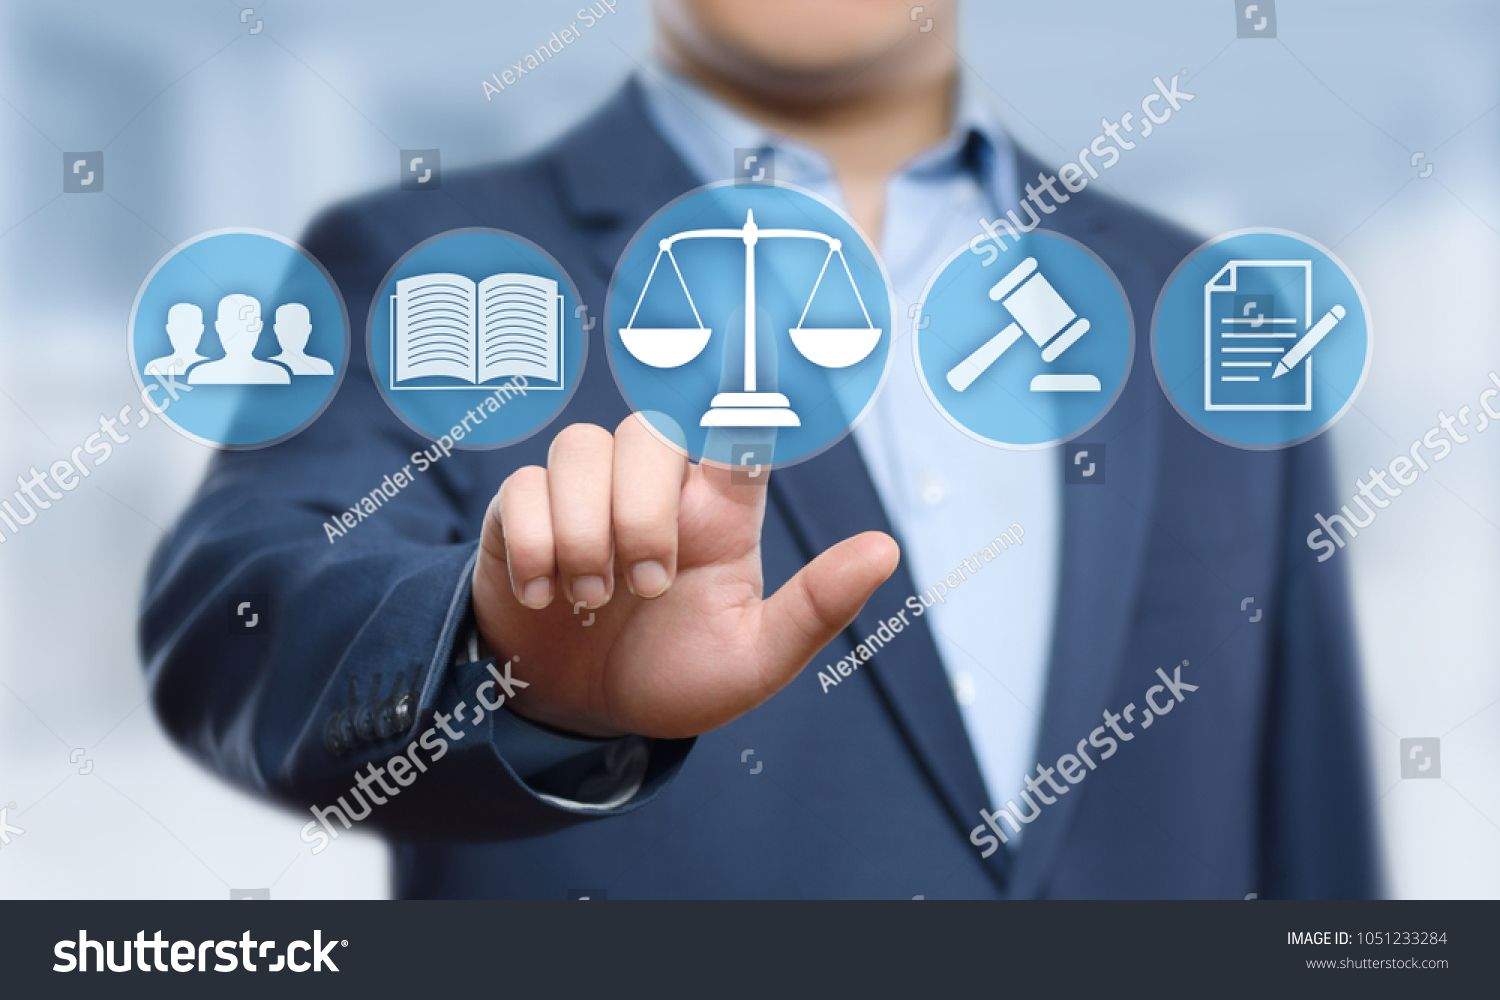 Labor Law Lawyer Legal Business Internet Technology Concept Ad